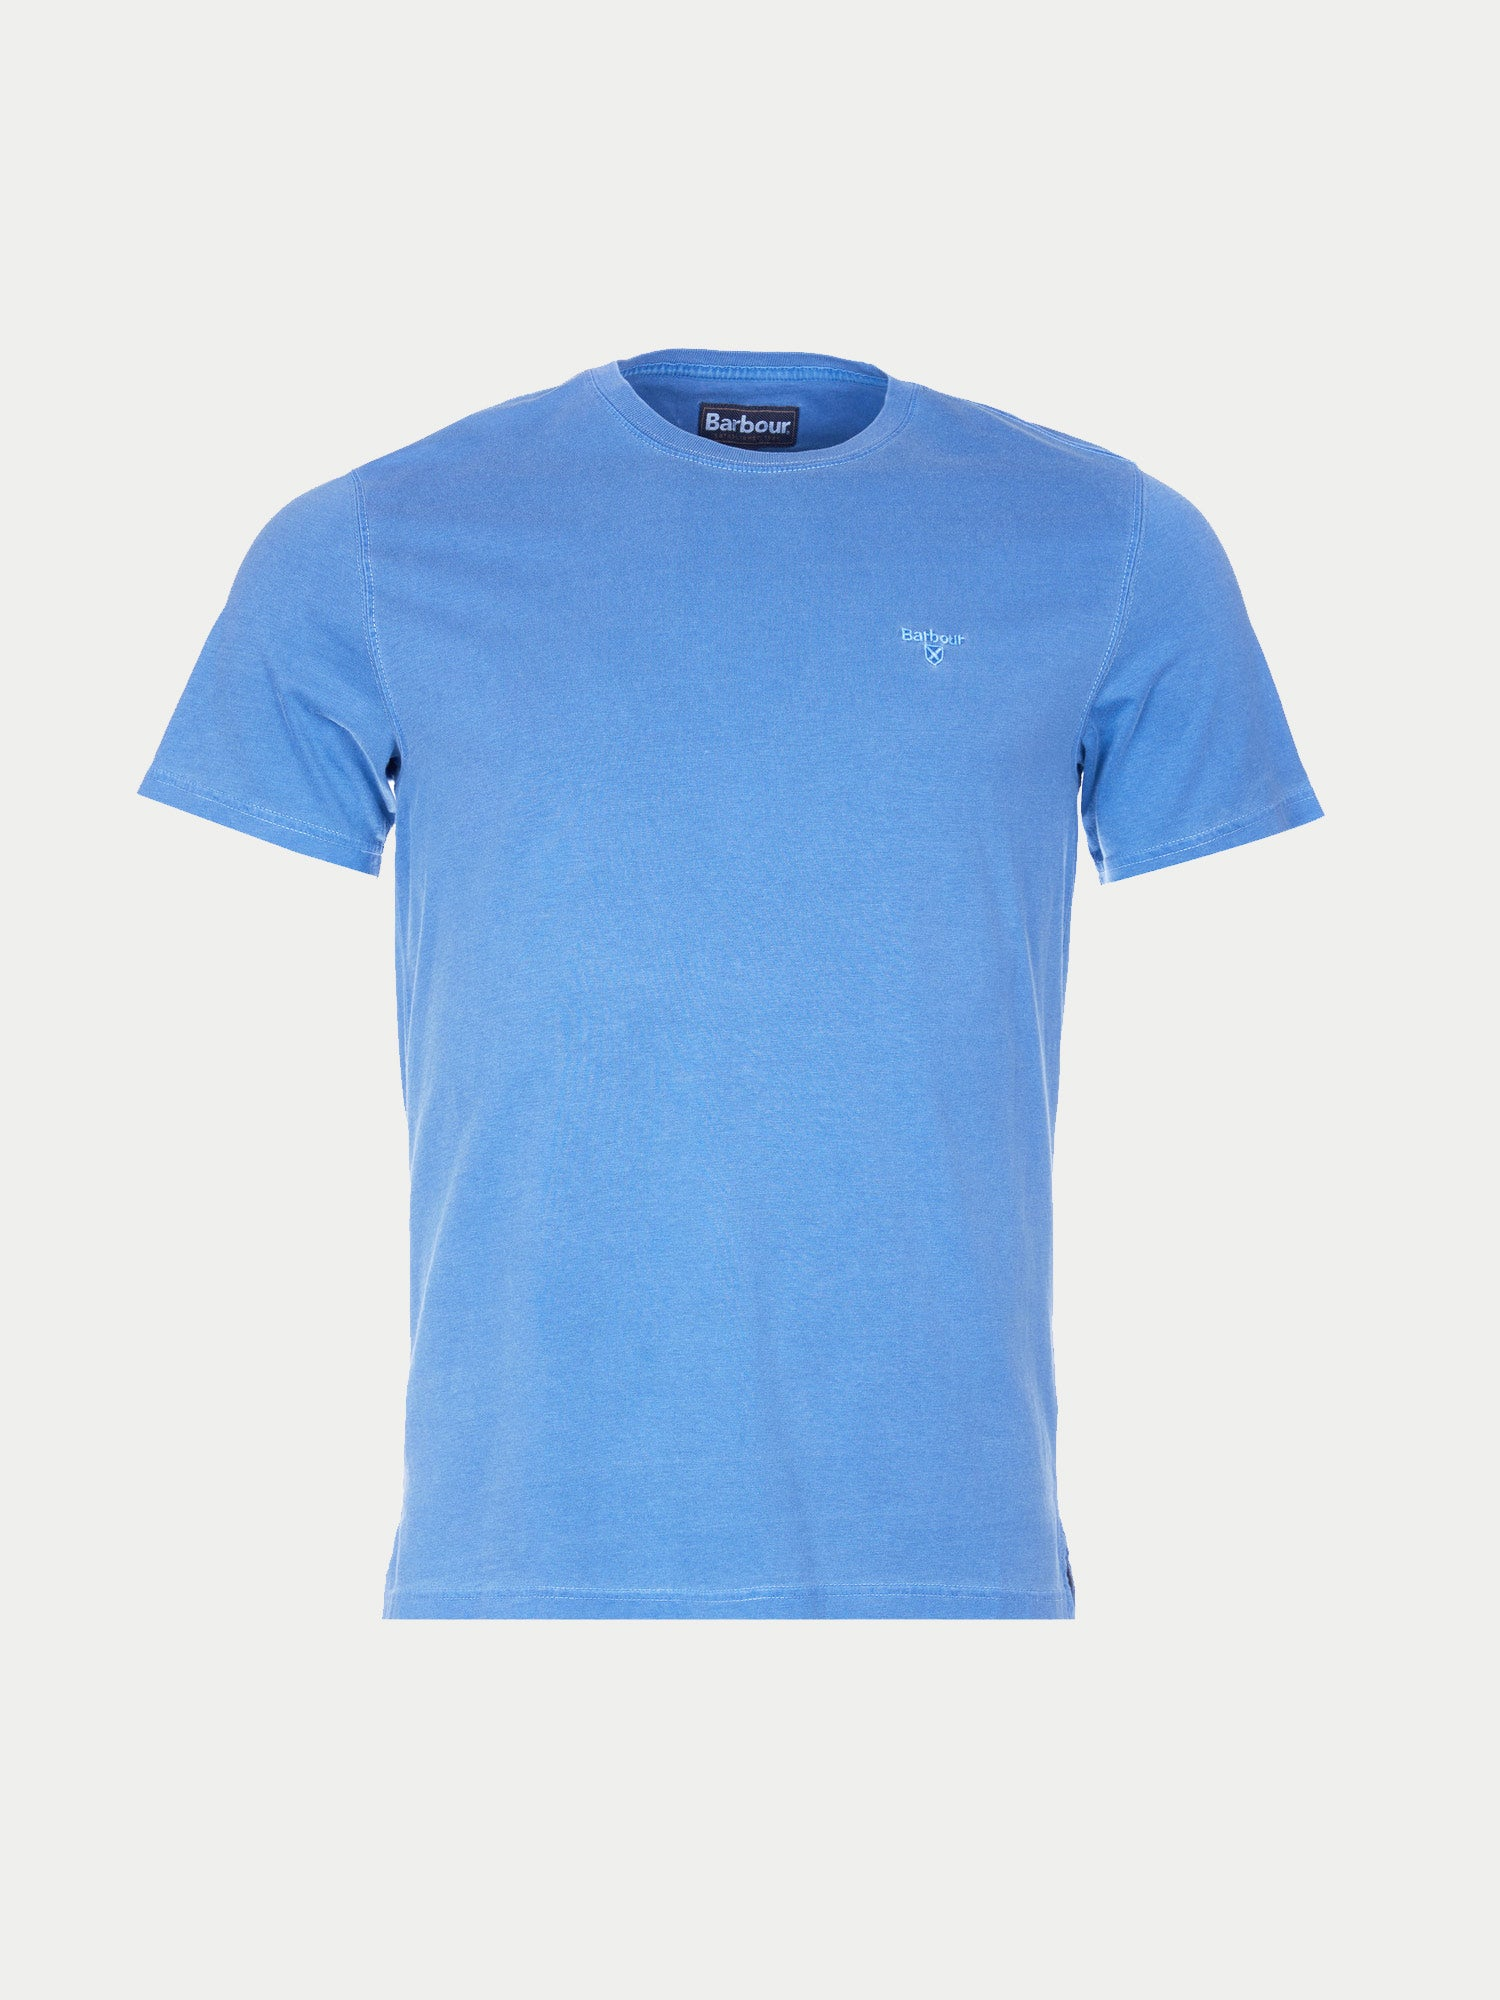 Barbour Garment Dyed T-Shirt (Blue)